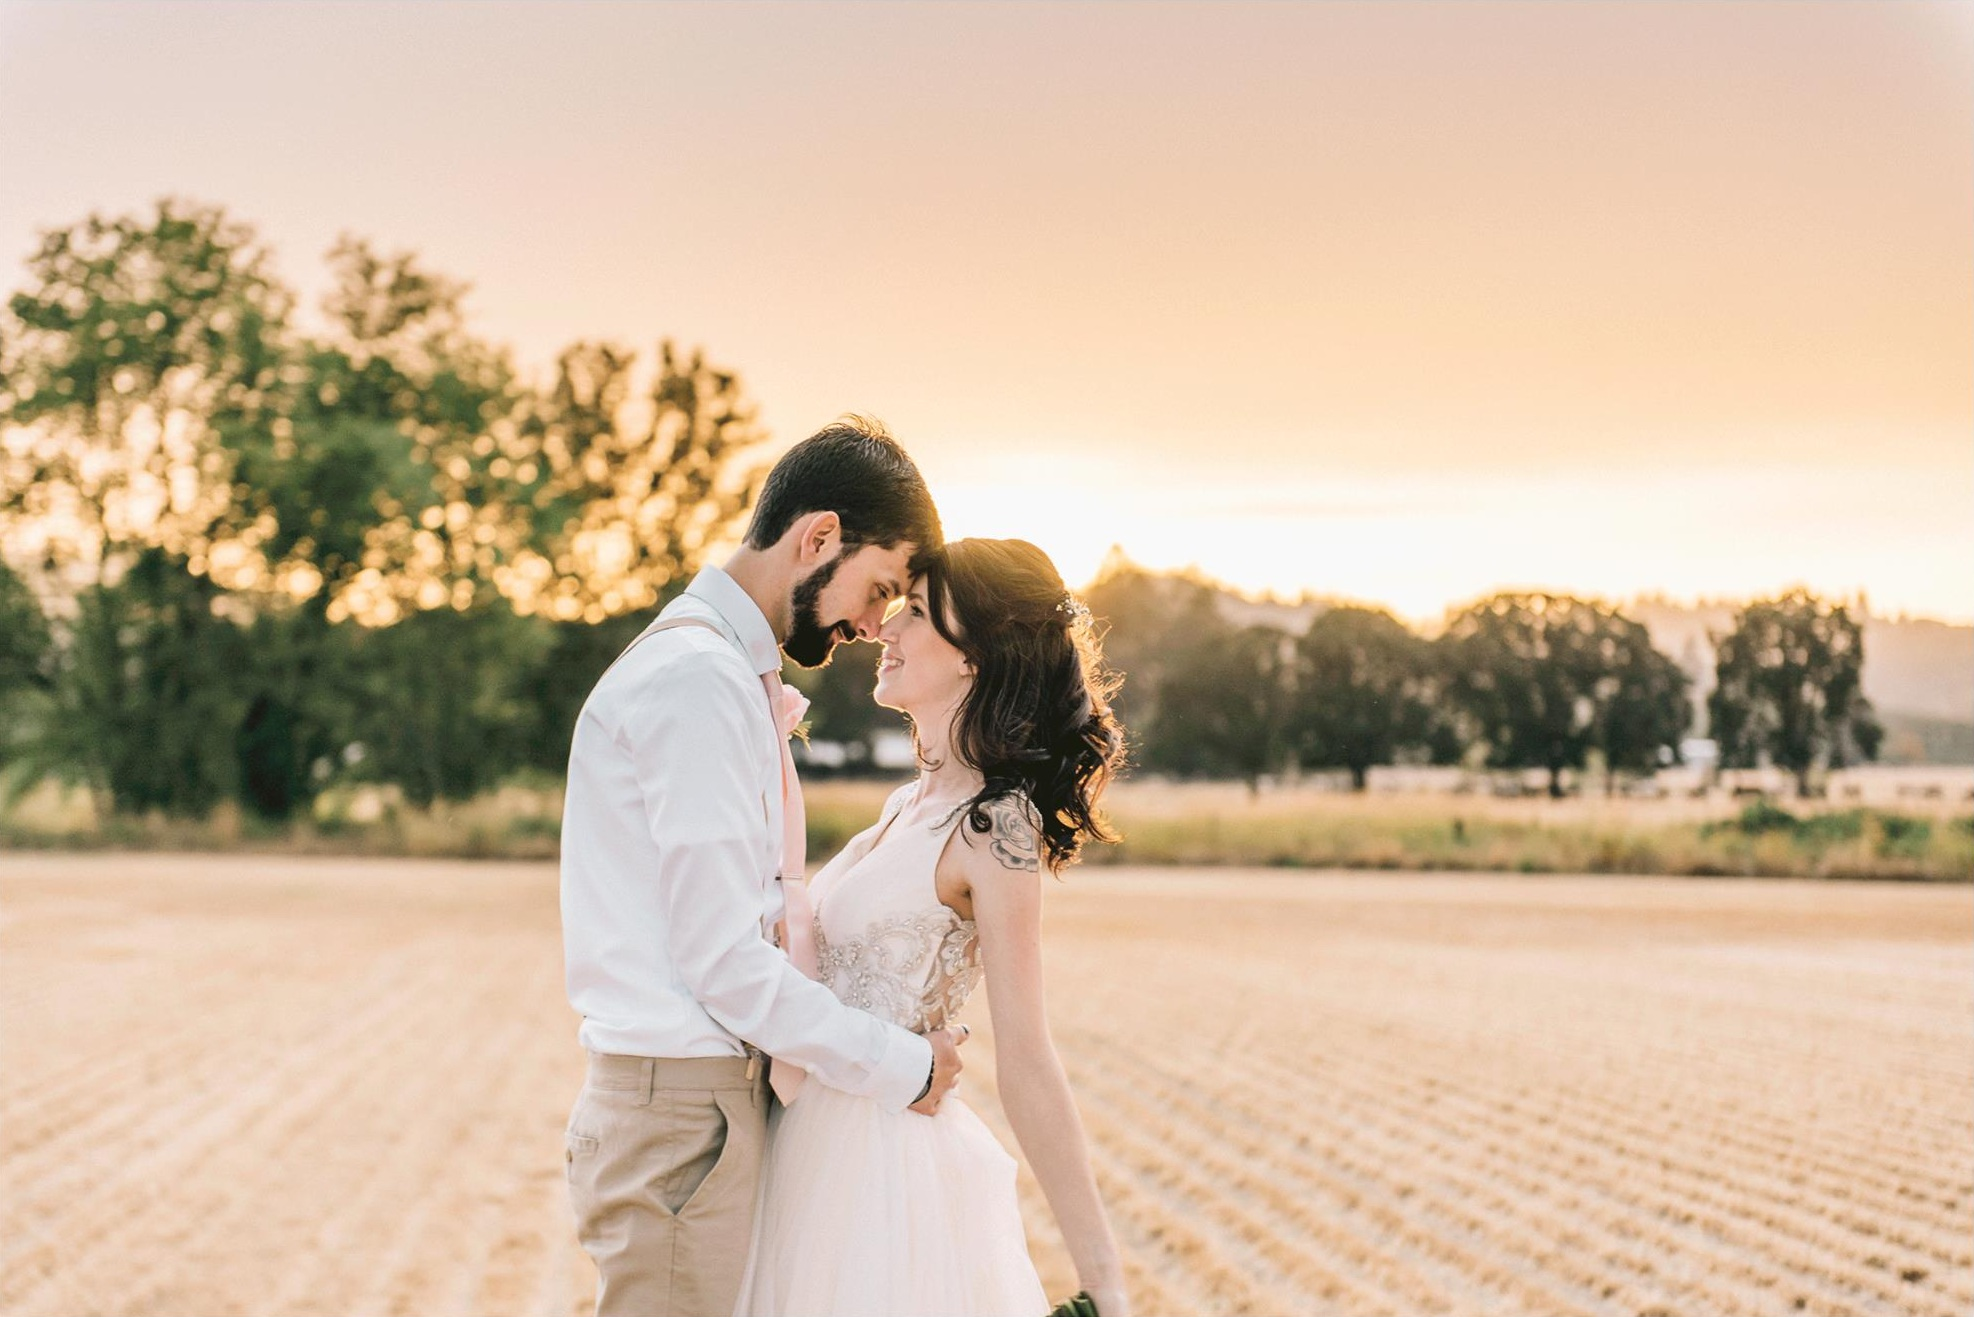 Sample gallery:Kimberly Farms wedding -